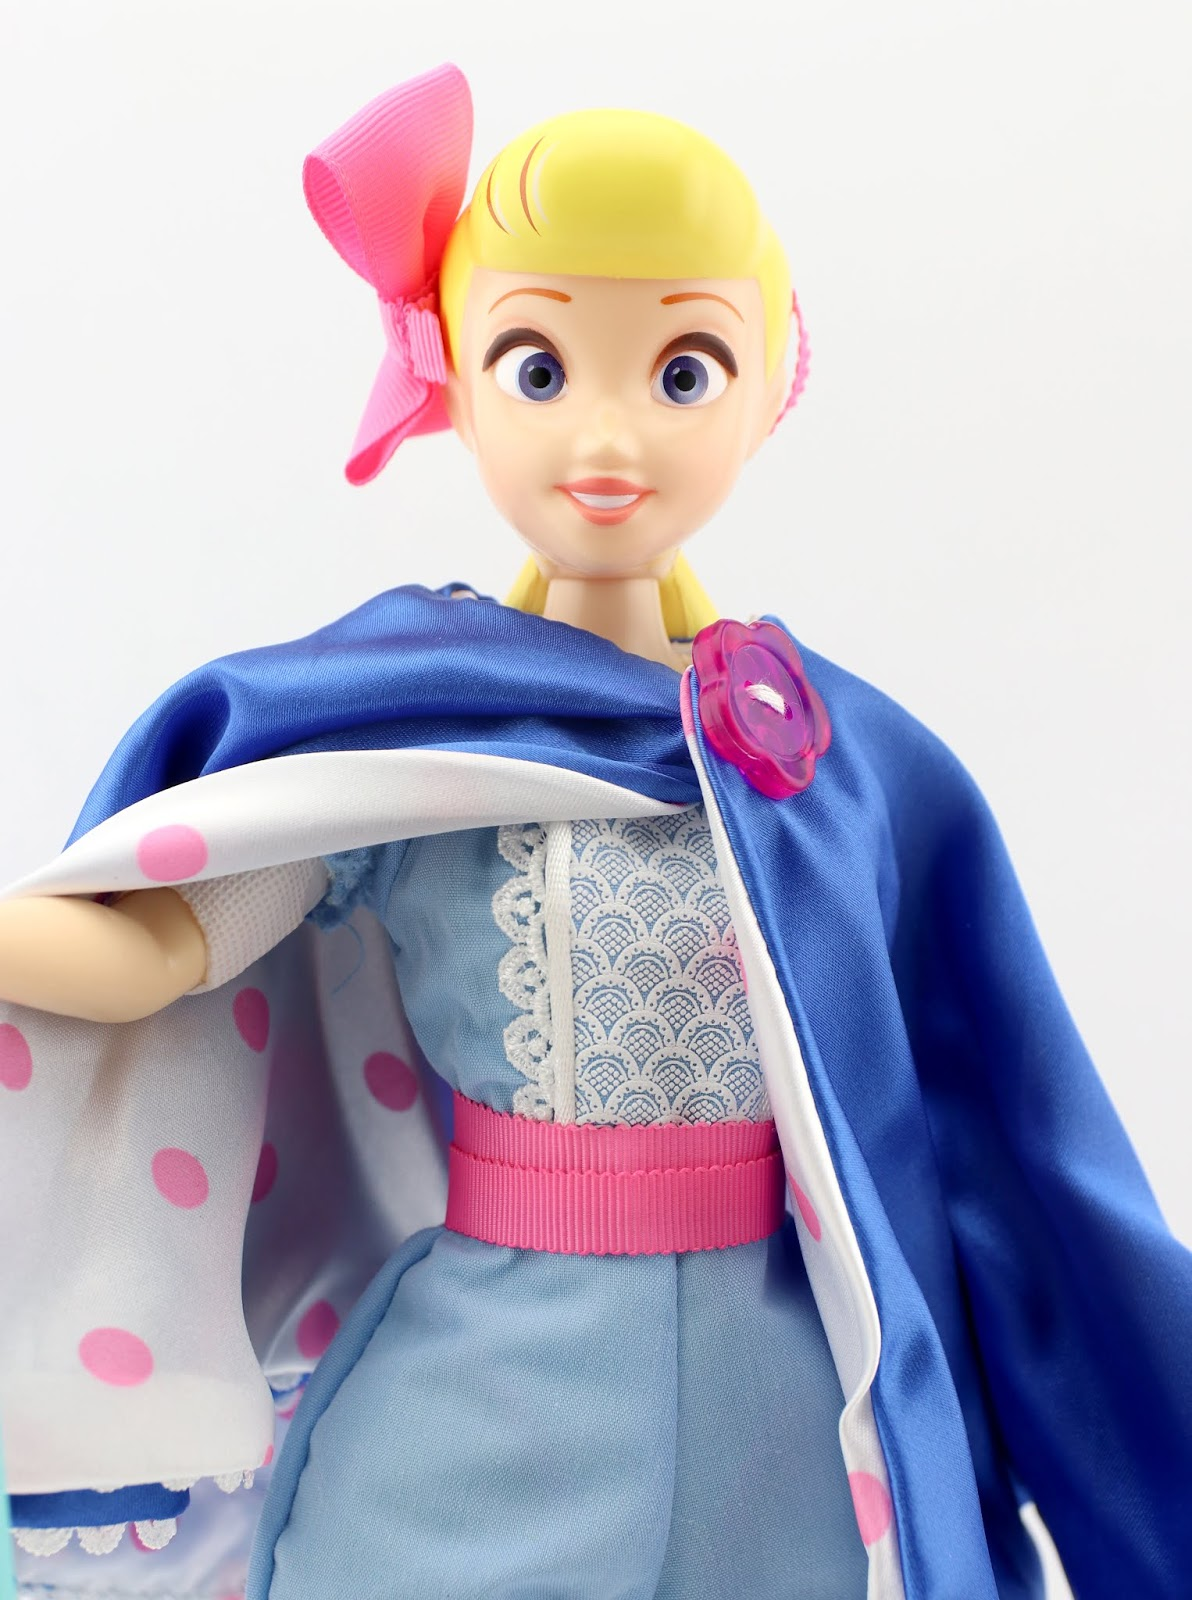 disney store toy story 4 bo peep talking action figure